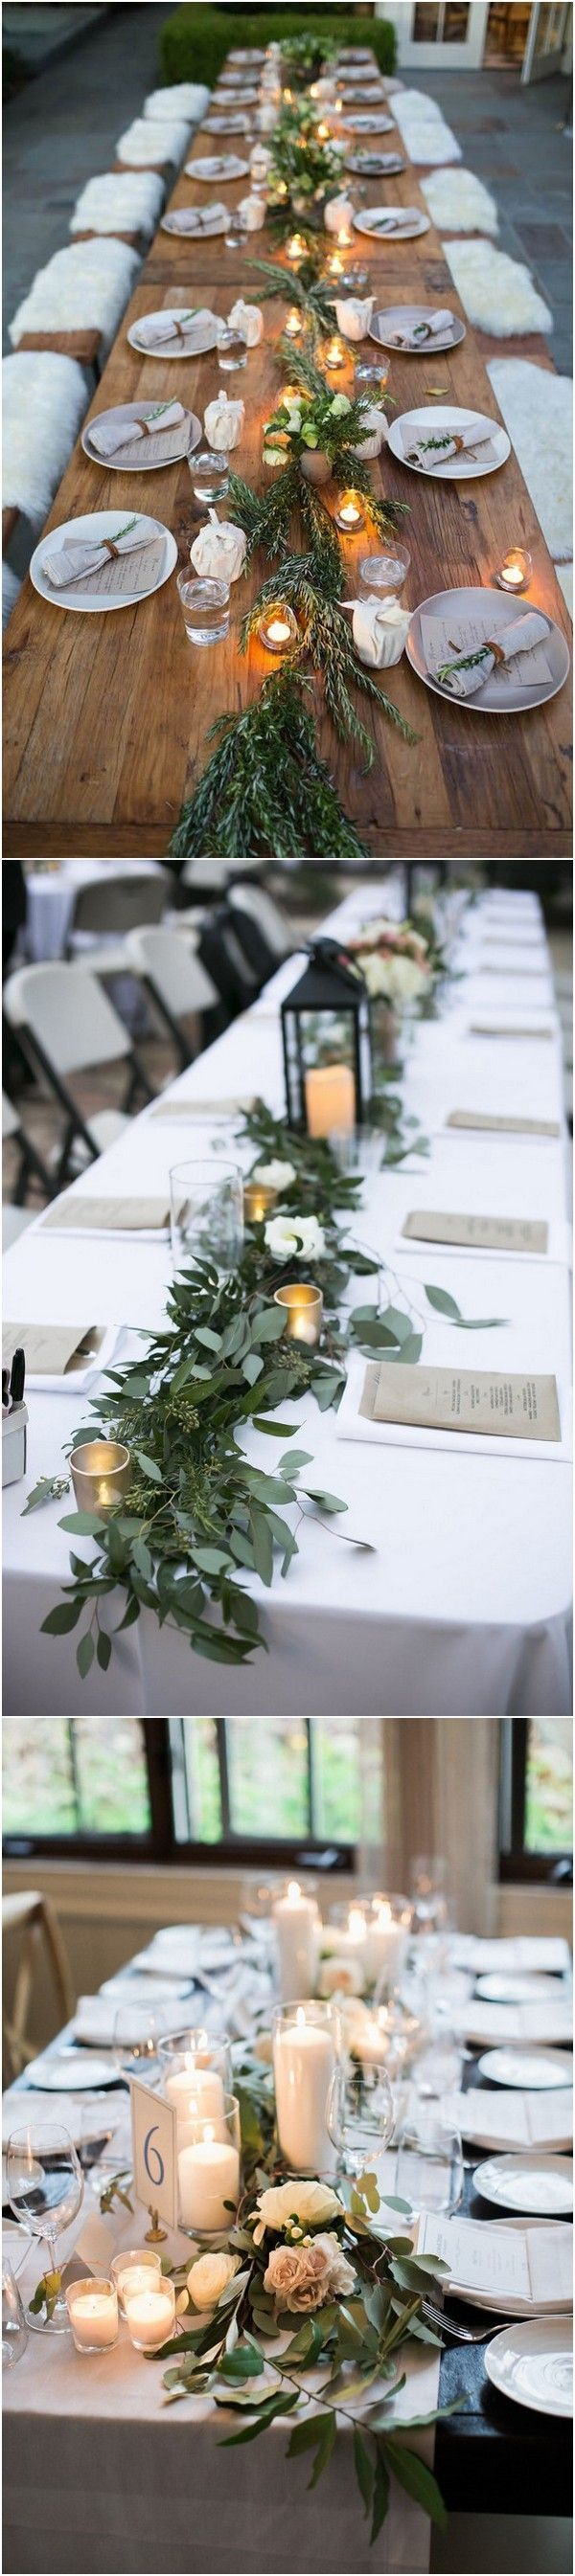 Best 25 wedding table decorations ideas on pinterest country best 25 wedding table decorations ideas on pinterest country wedding decorations diy wedding centerpieces and barn wedding decorations junglespirit Gallery